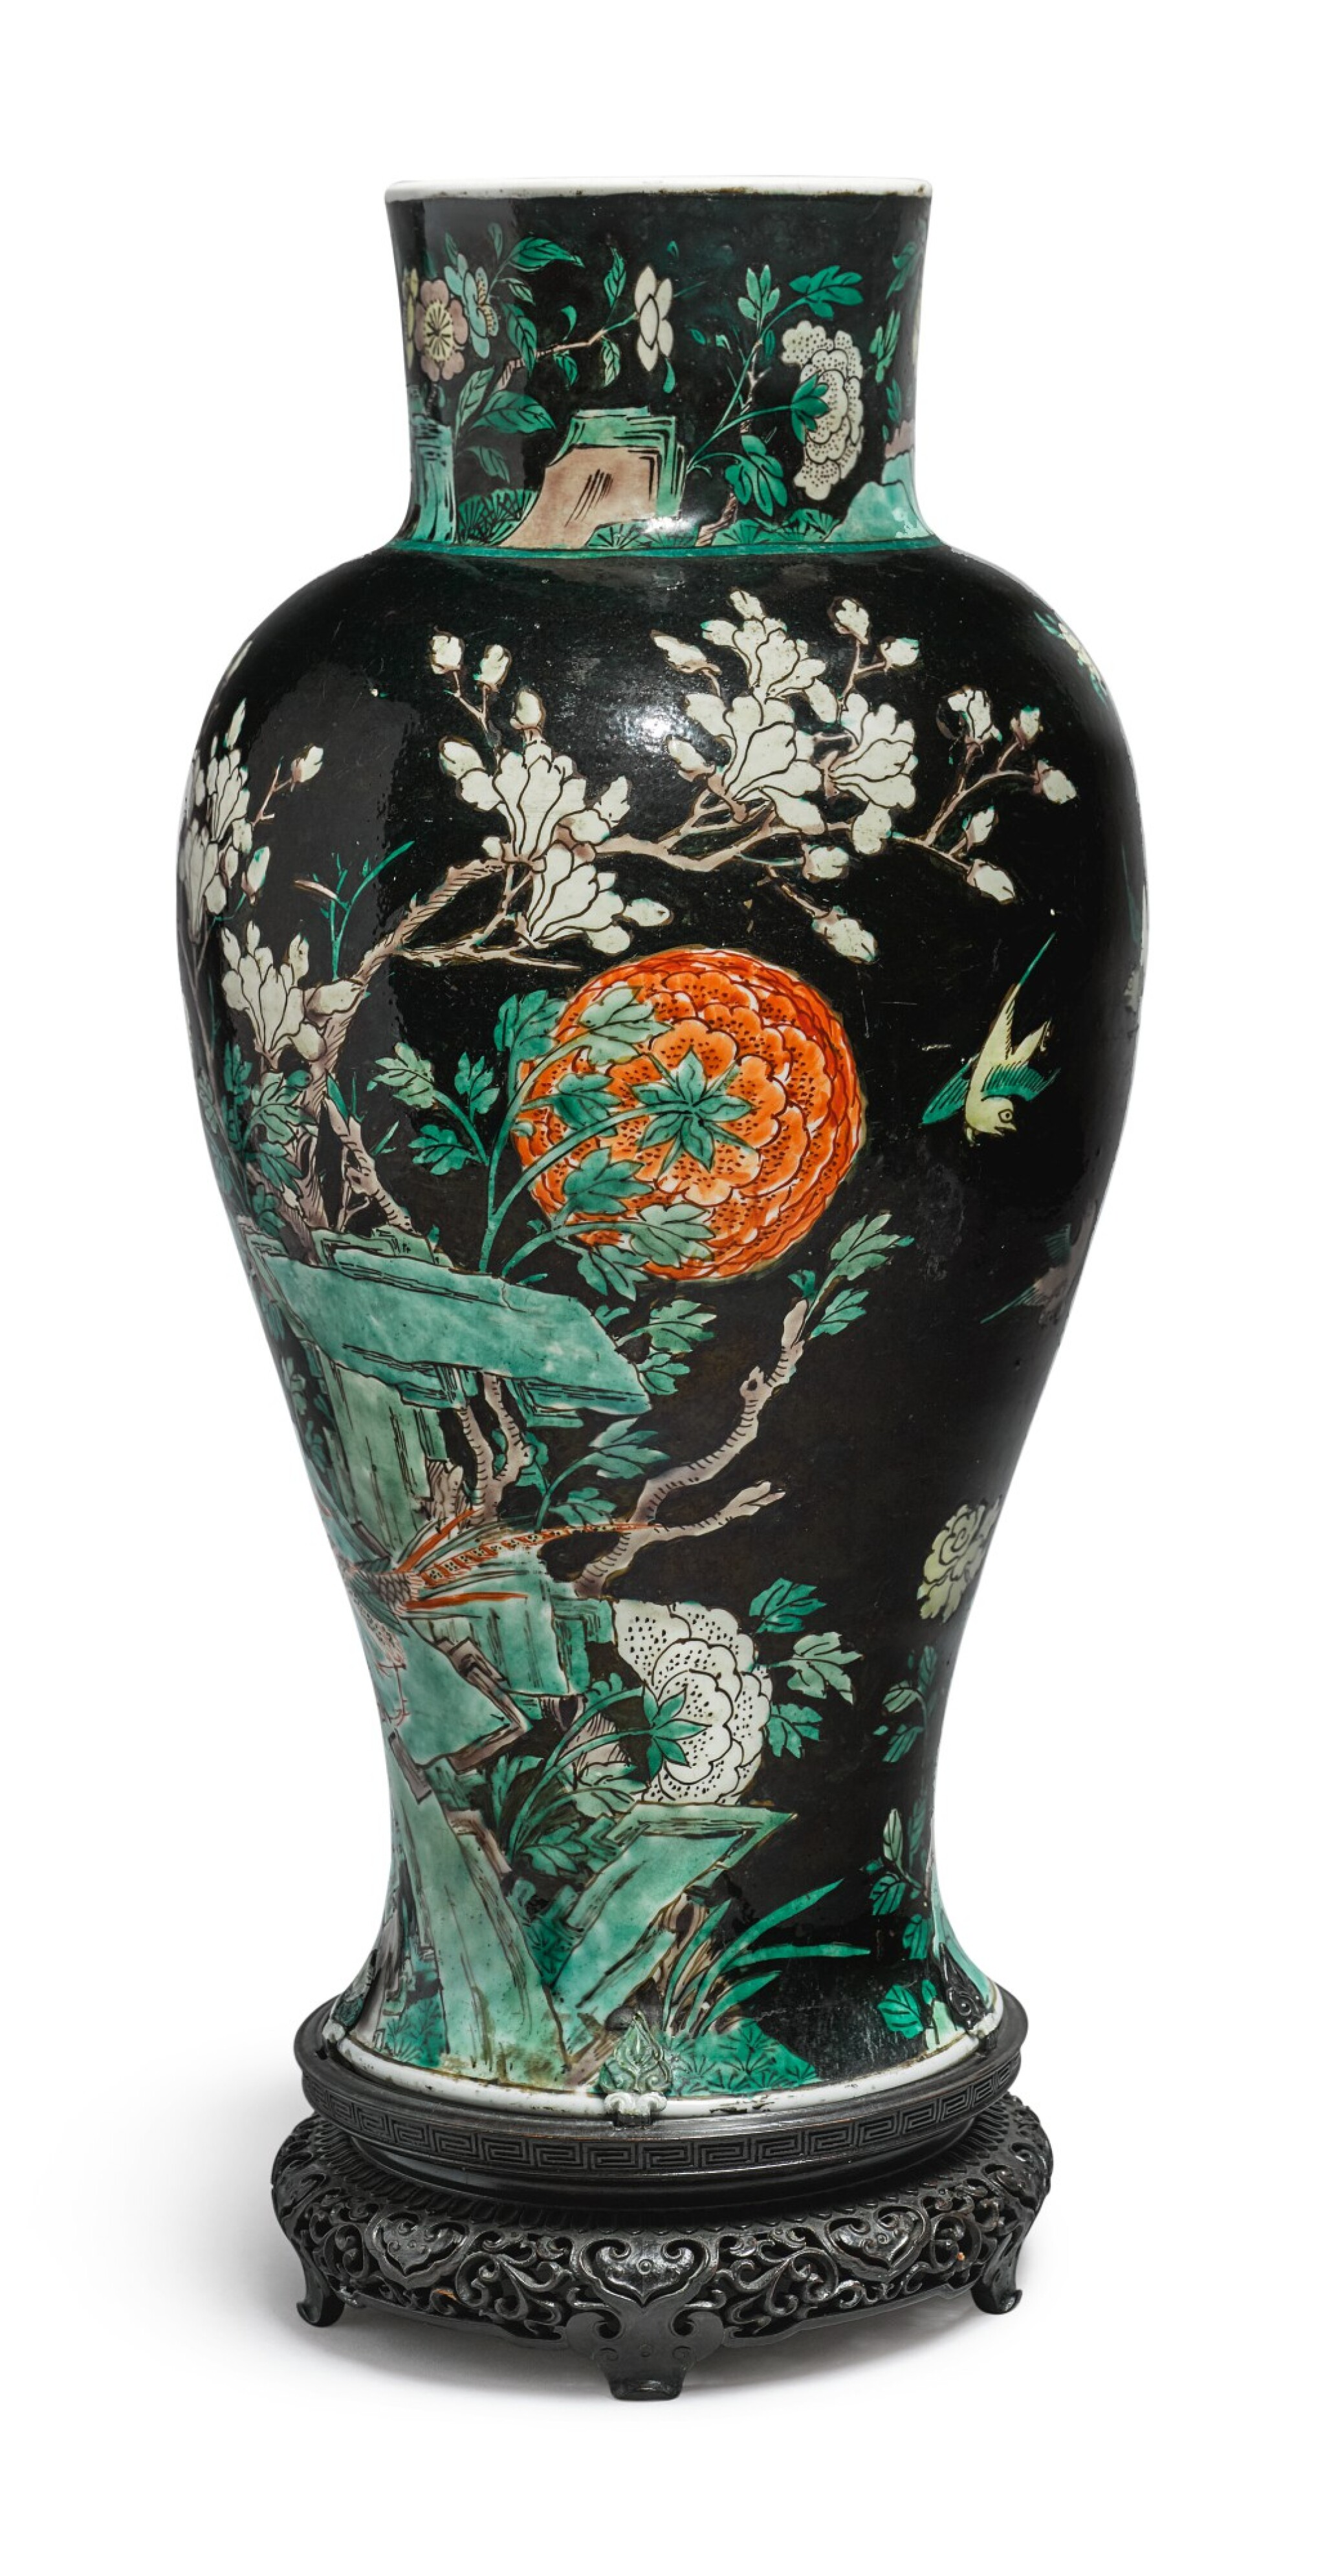 View 1 of Lot 1039.  A FAMILLE-NOIRE 'BIRD AND FLOWER' BALUSTER JAR,  QING DYNASTY, 19TH CENTURY.